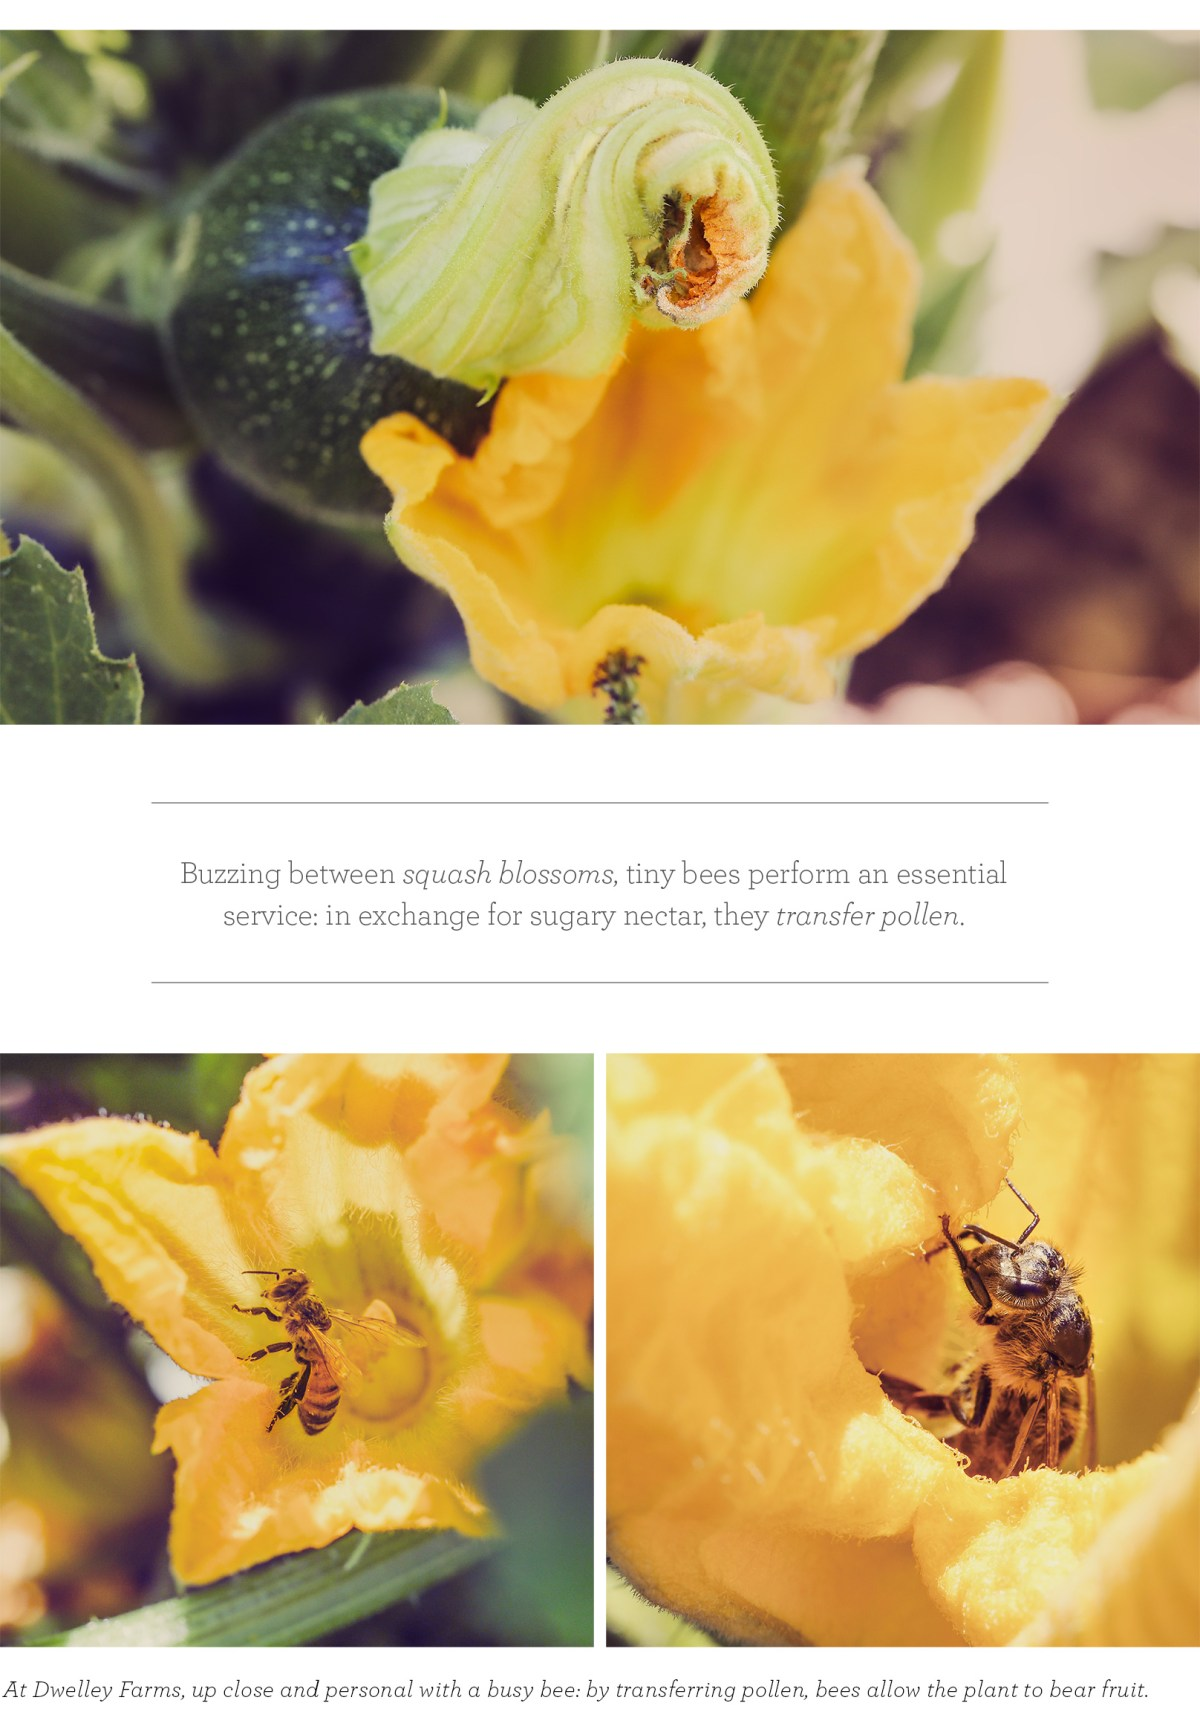 061716_BeePollination_Blog_V01_04